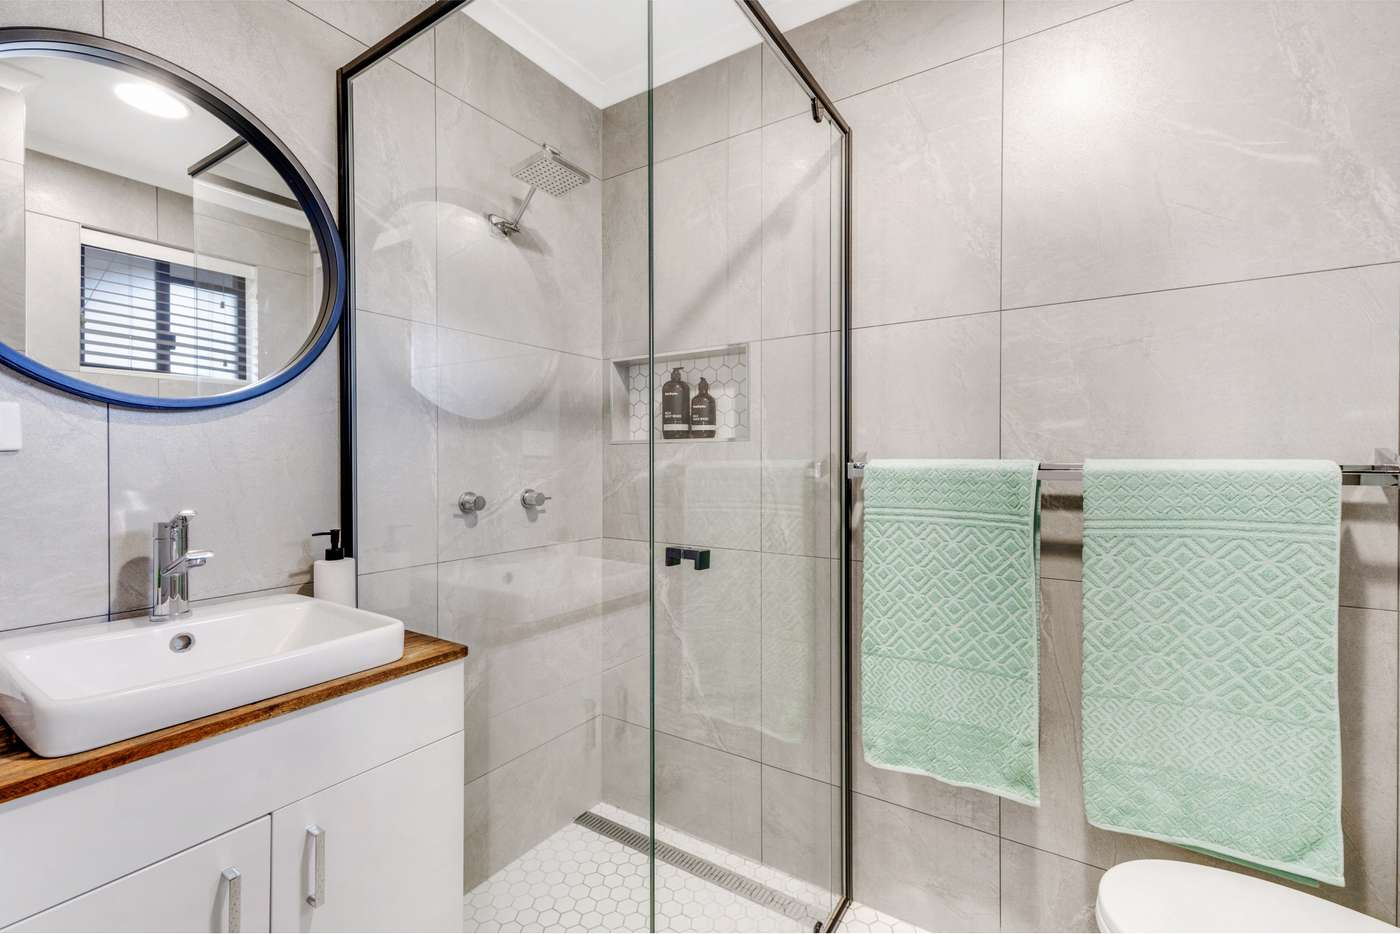 Fifth view of Homely house listing, 9 Lexington Drive, Worongary QLD 4213